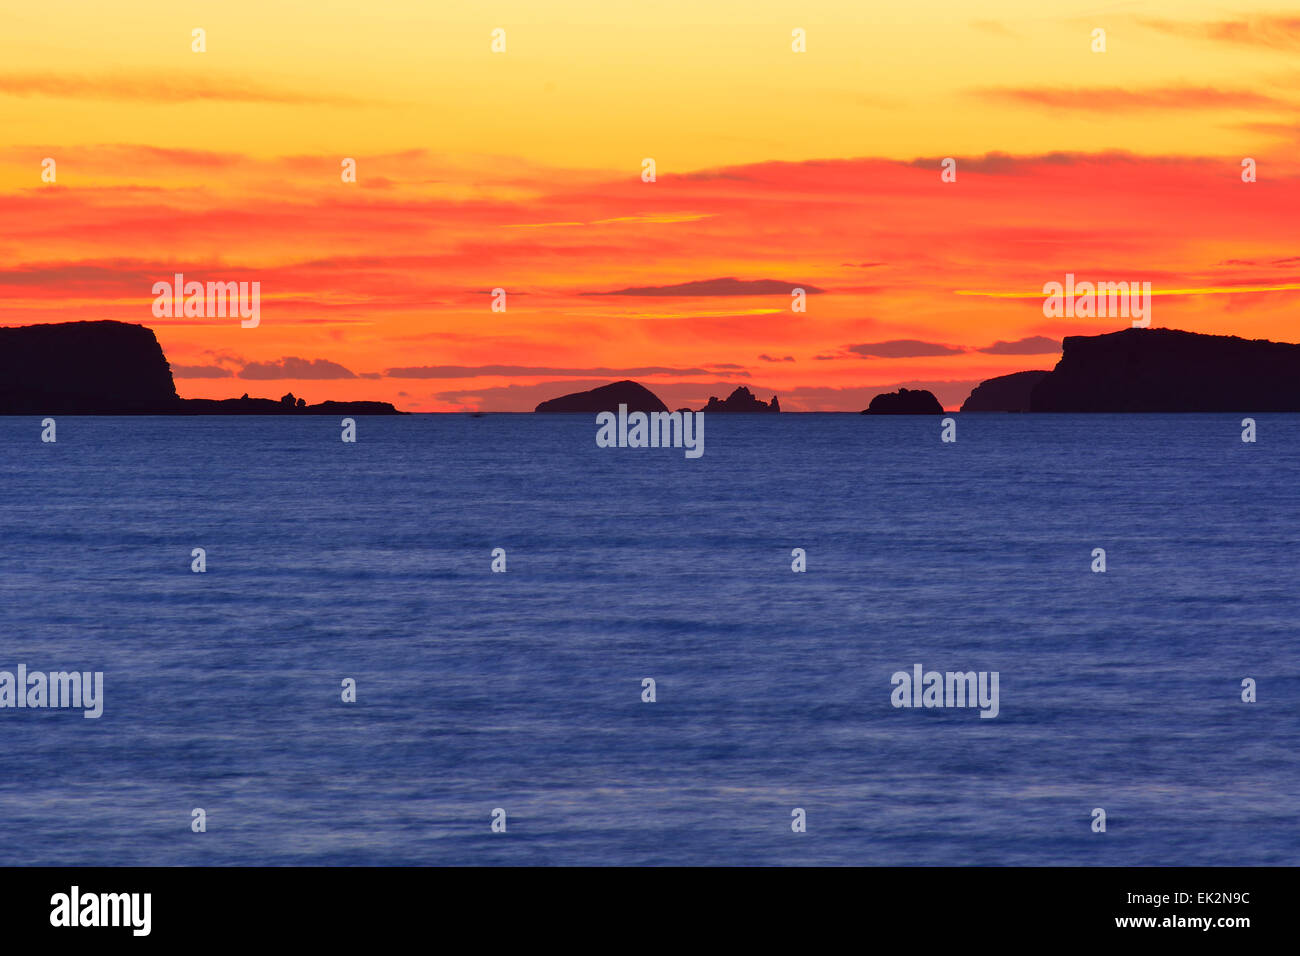 Sunset in Ibiza, Spain - Stock Image